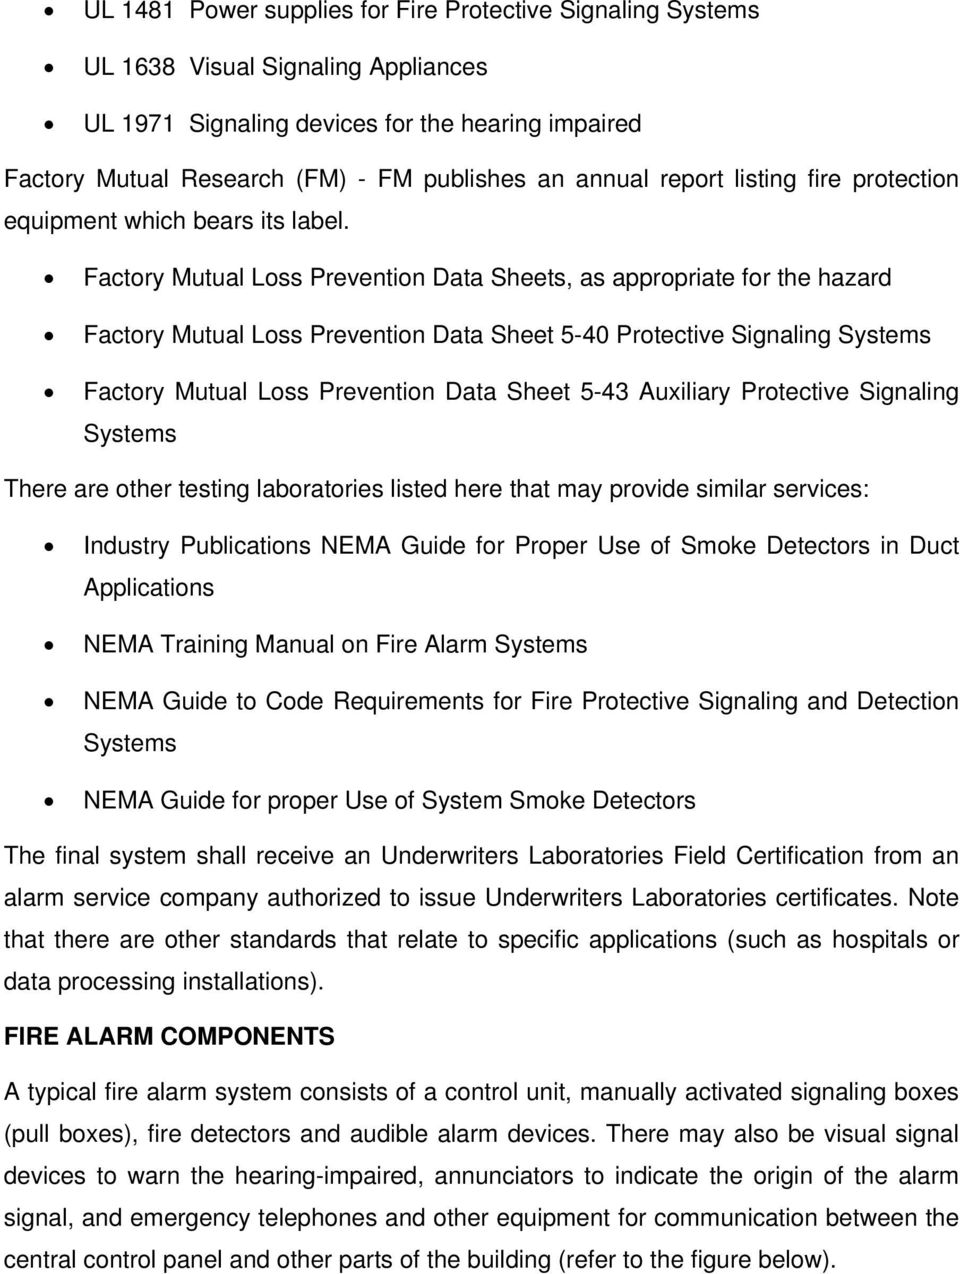 Factory Mutual Loss Prevention Data Sheets, as appropriate for the hazard Factory Mutual Loss Prevention Data Sheet 5-40 Protective Signaling Systems Factory Mutual Loss Prevention Data Sheet 5-43